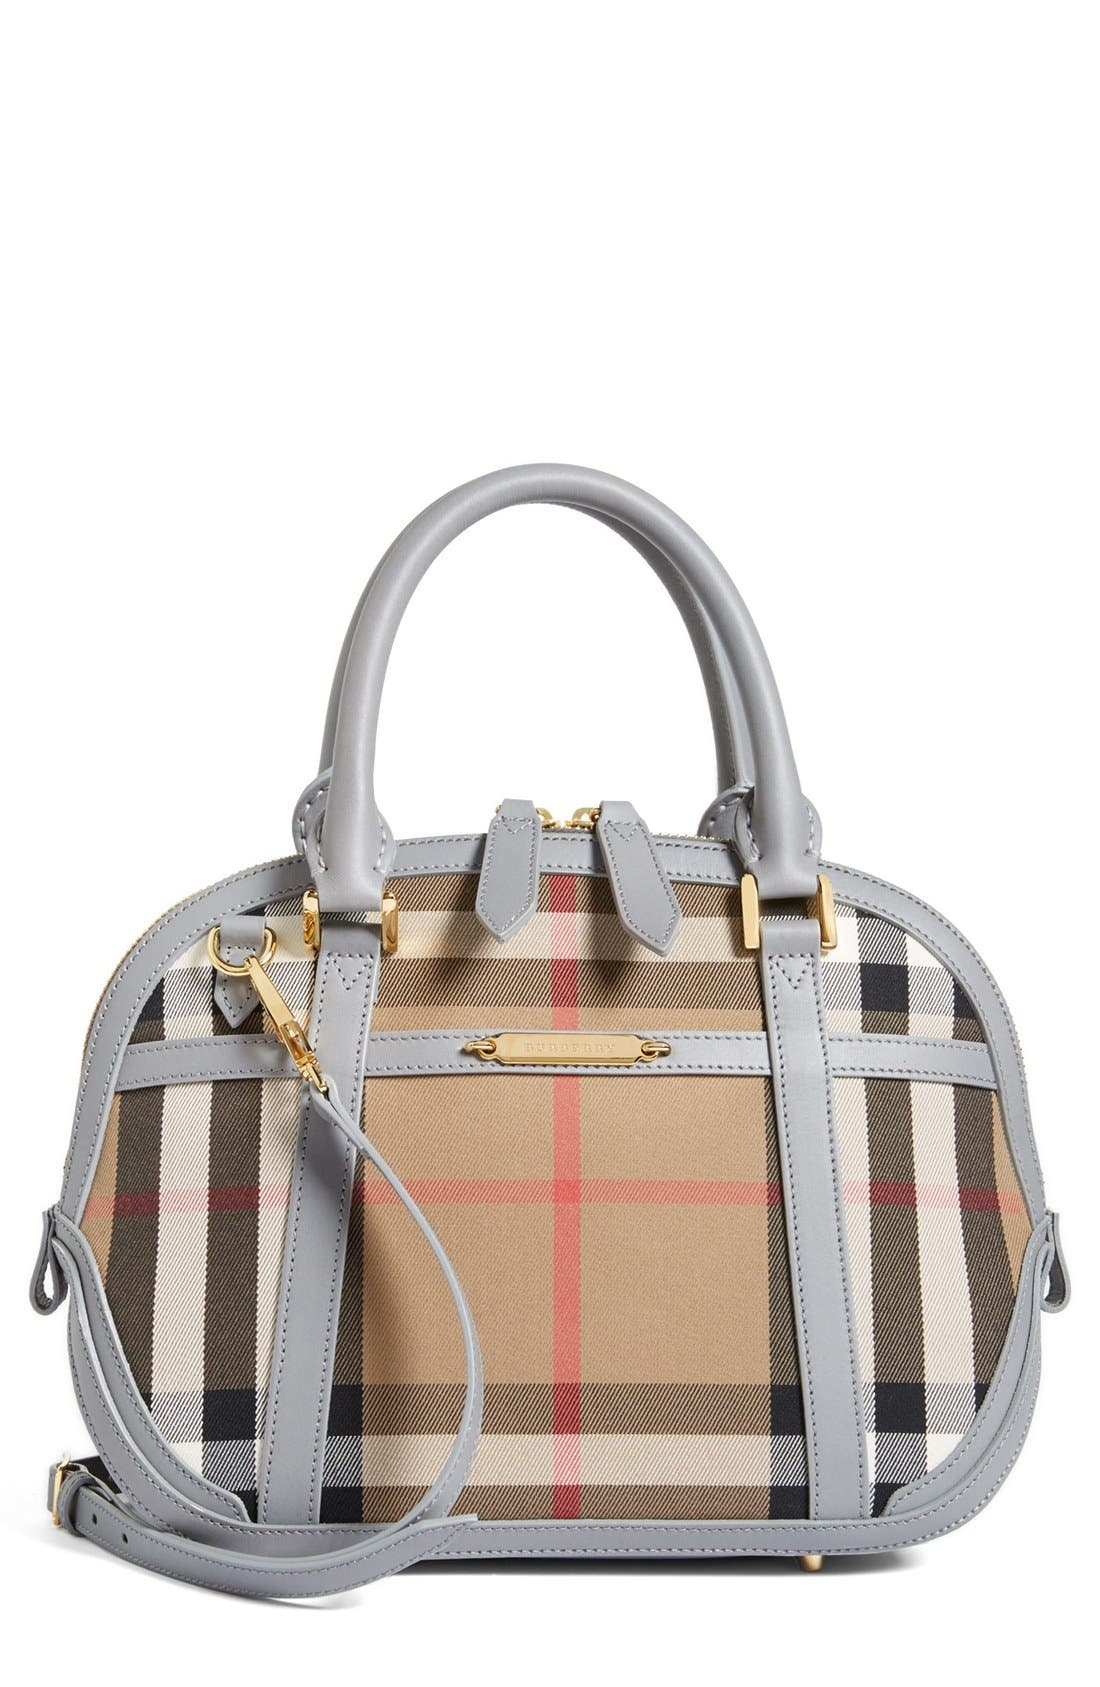 Main Image - Burberry 'Small Orchard' Satchel